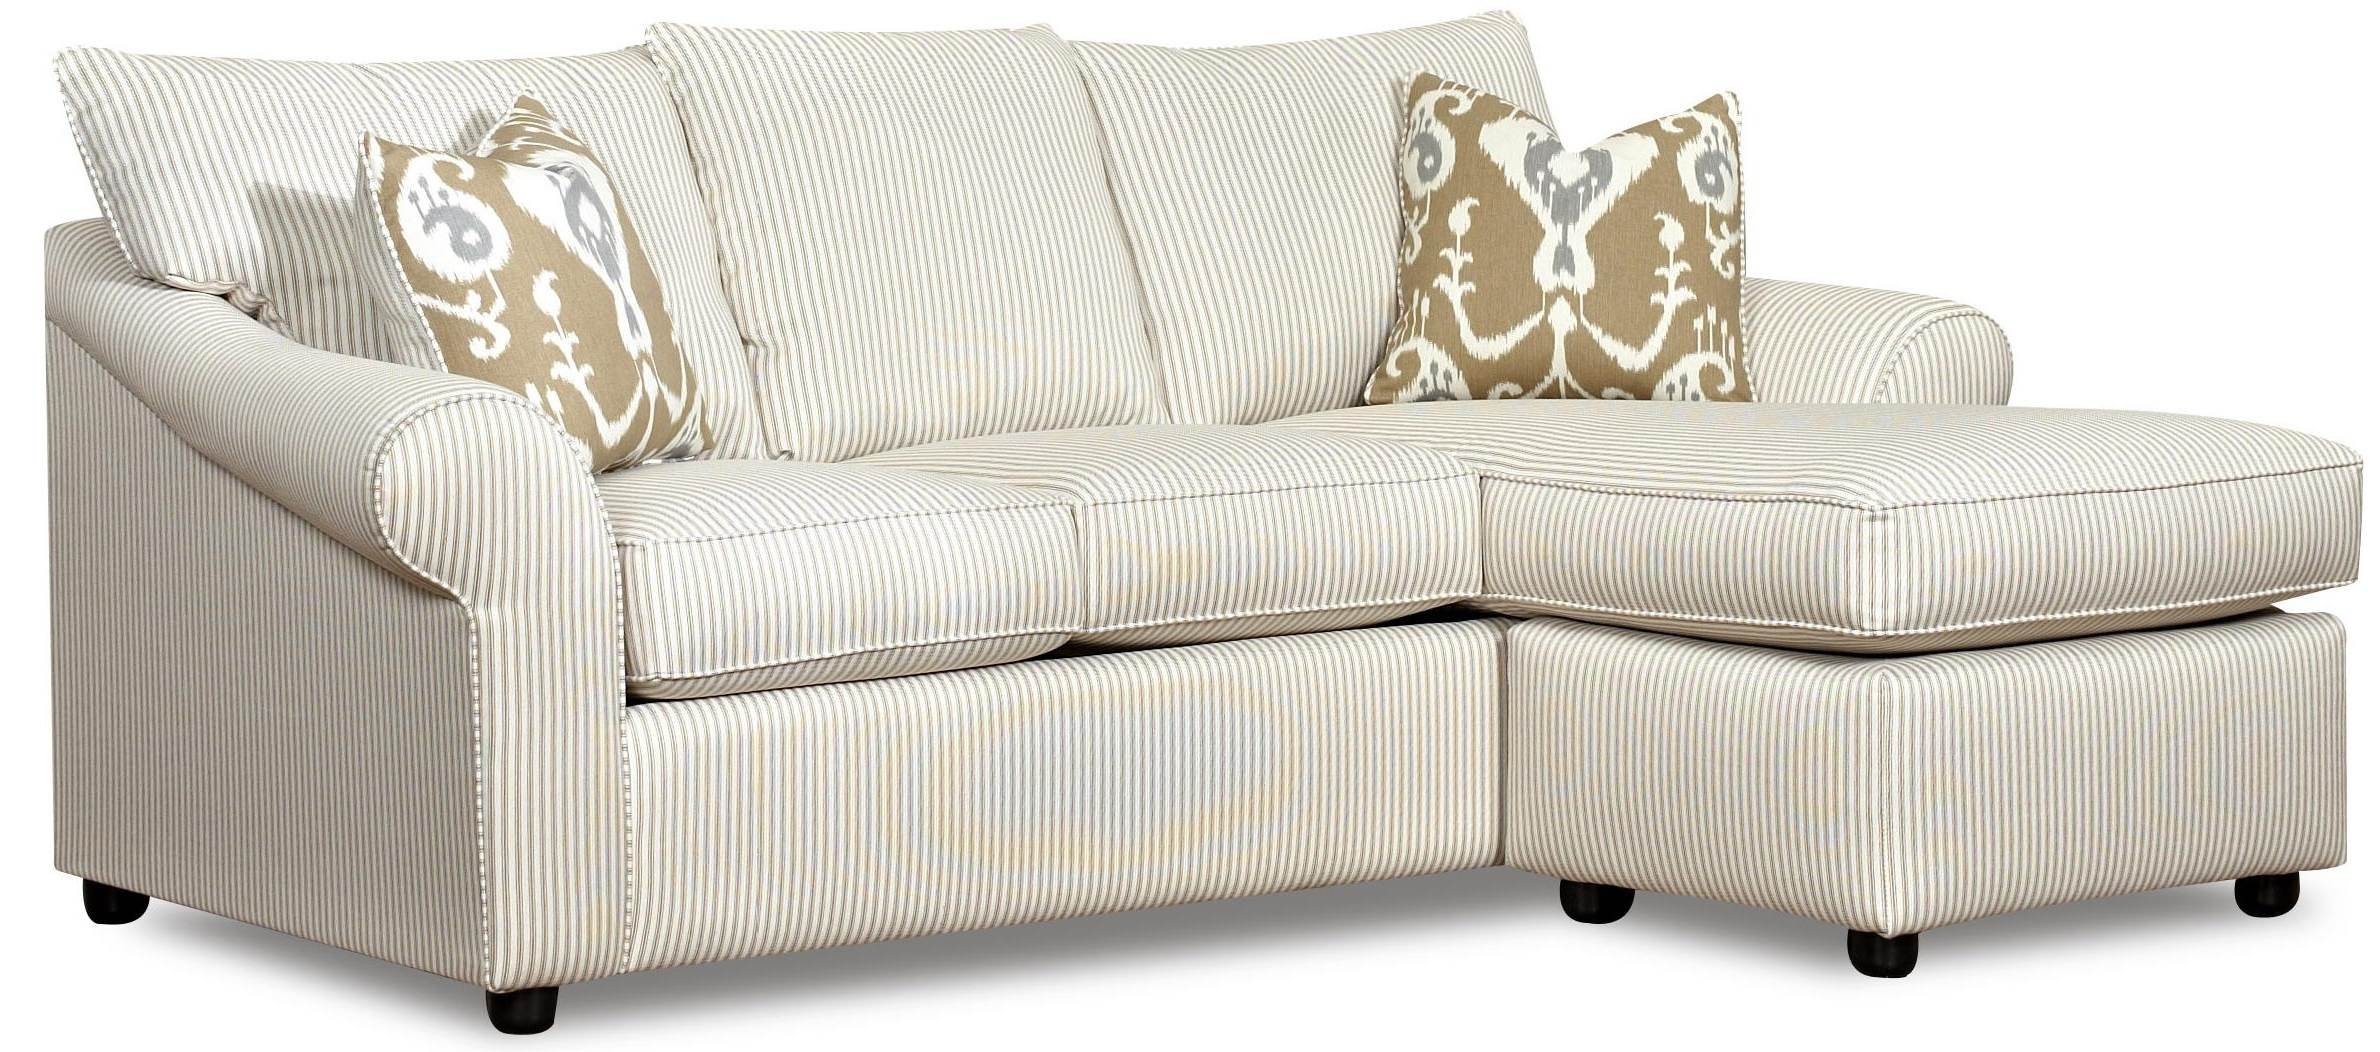 Most Recent Sofa With Reversible Chaise Loungeklaussner (View 15 of 15)